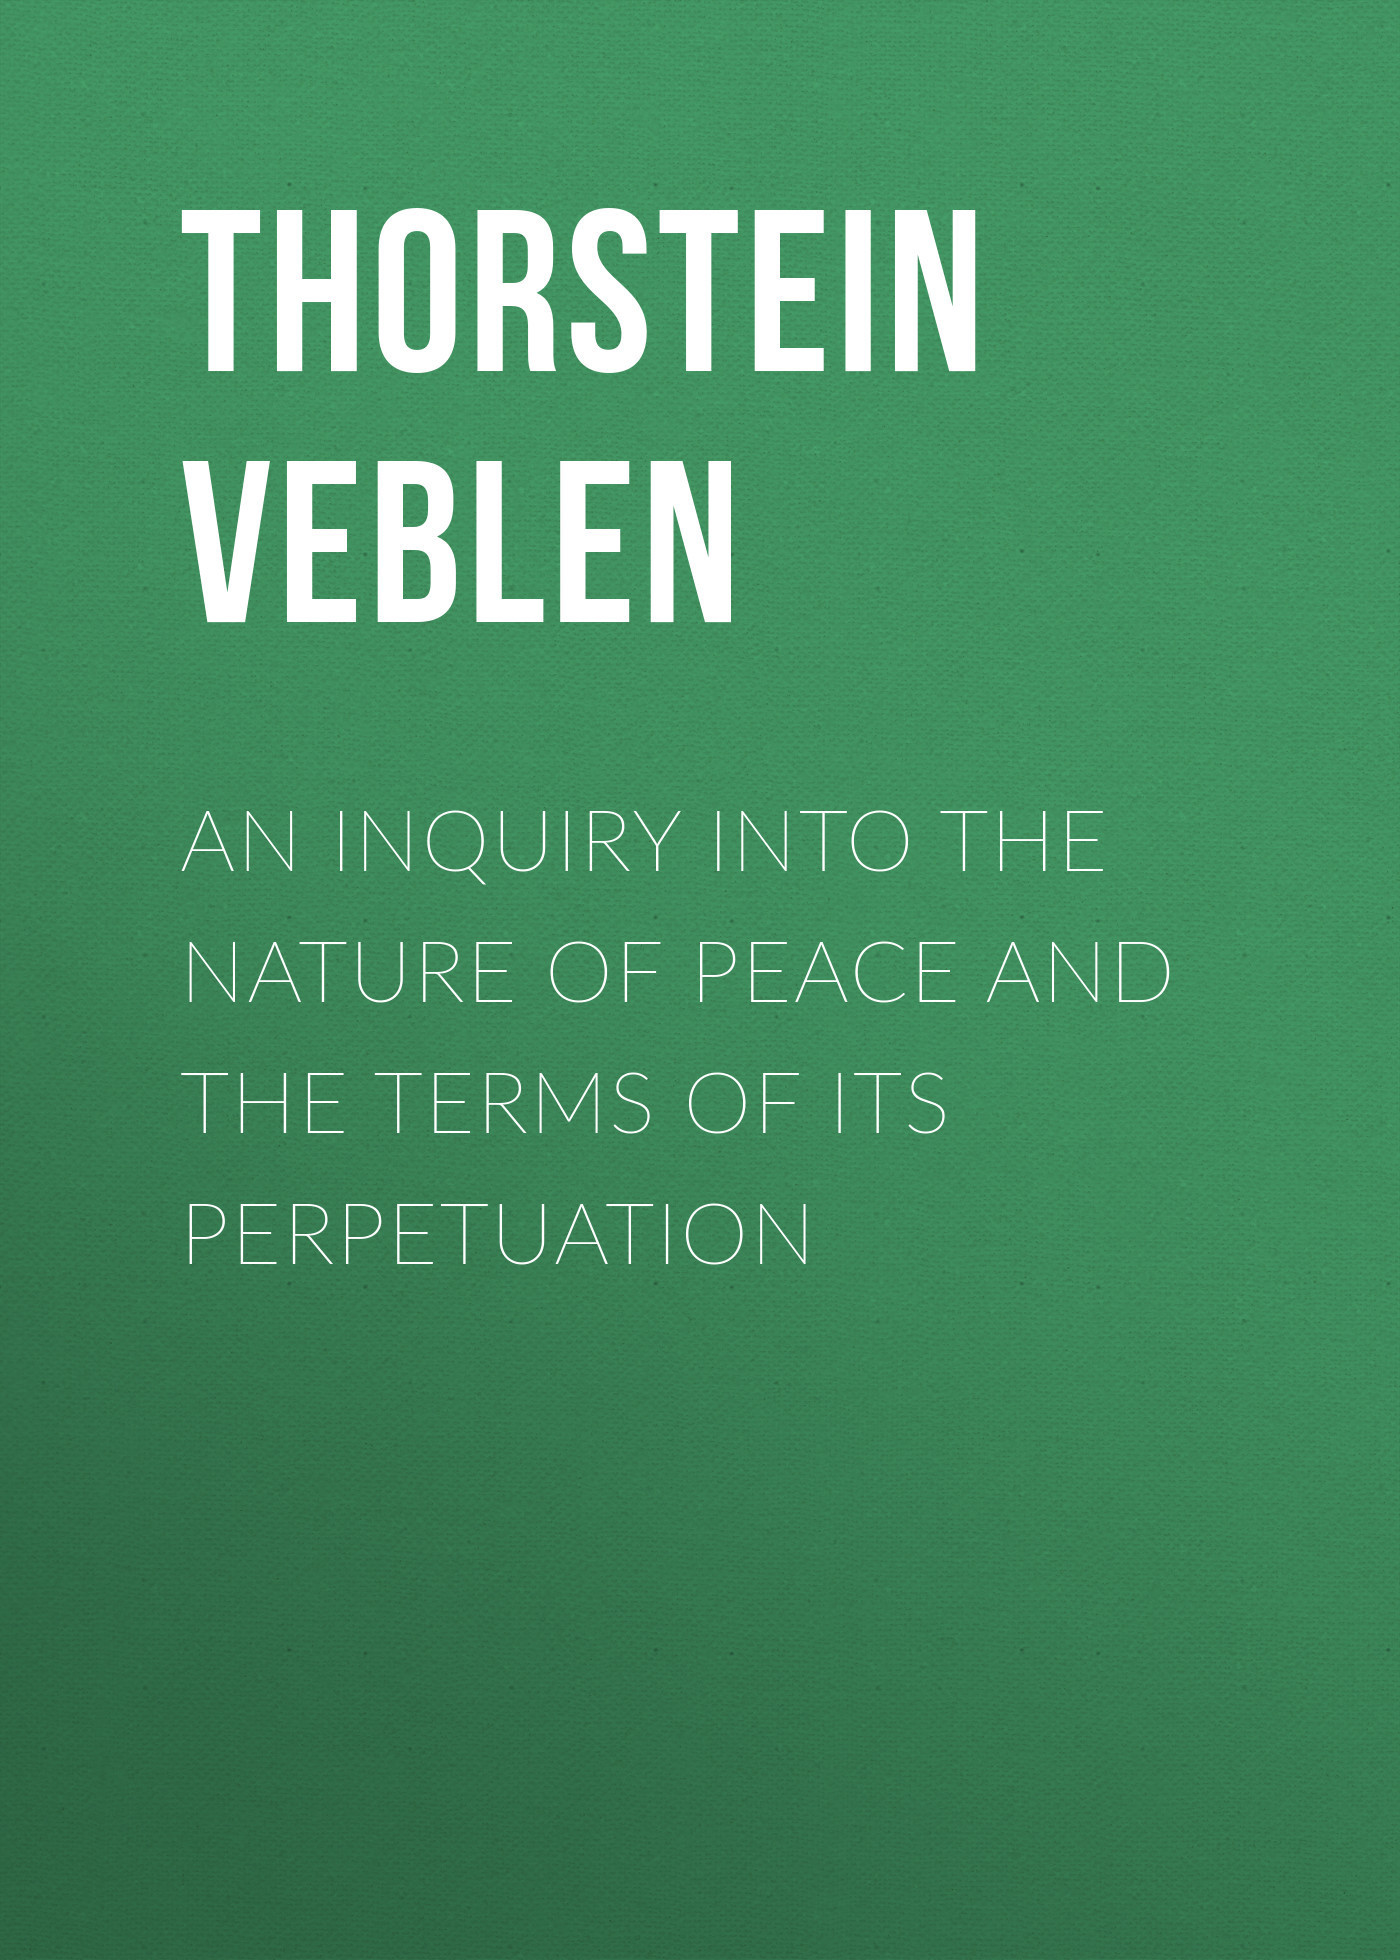 Thorstein Veblen An Inquiry into the Nature of Peace and the Terms of Its Perpetuation peace education at the national university of rwanda